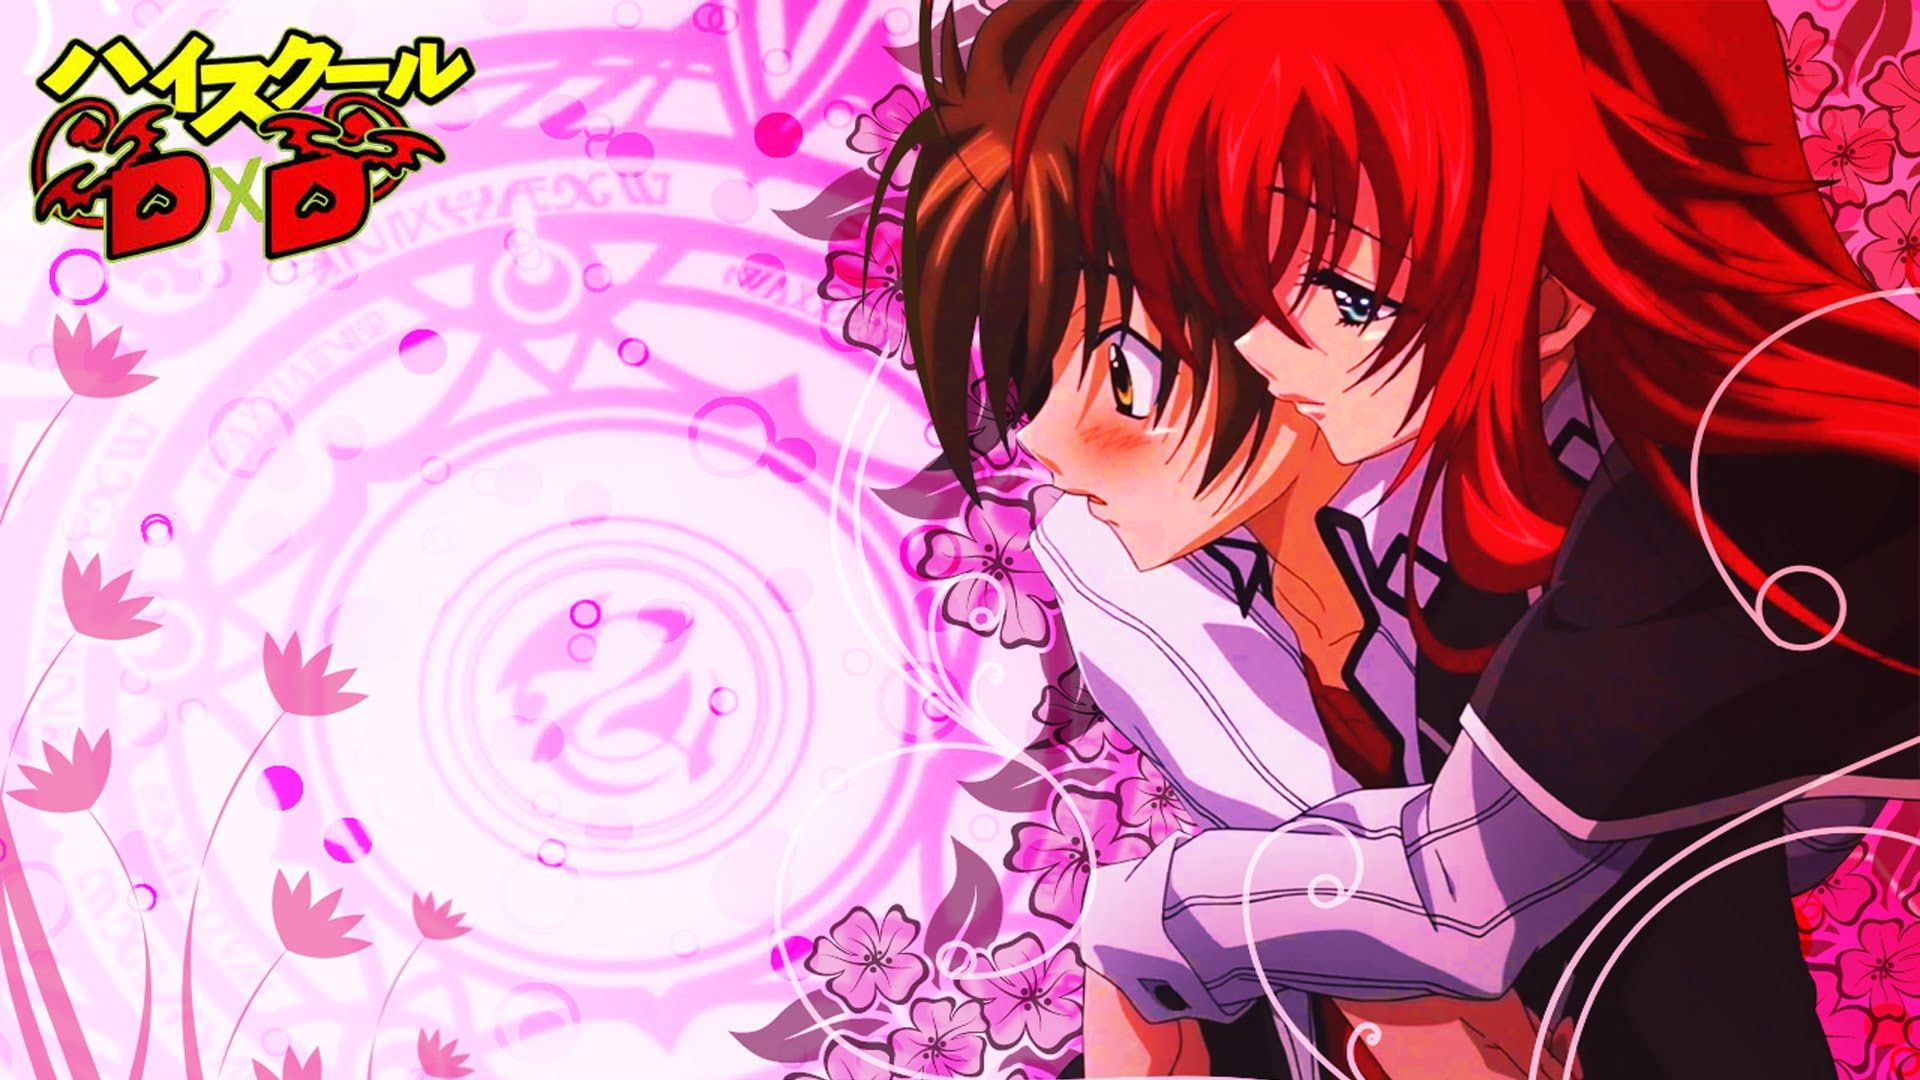 anime anime girls Highschool DxD Hyoudou Issei Gremory